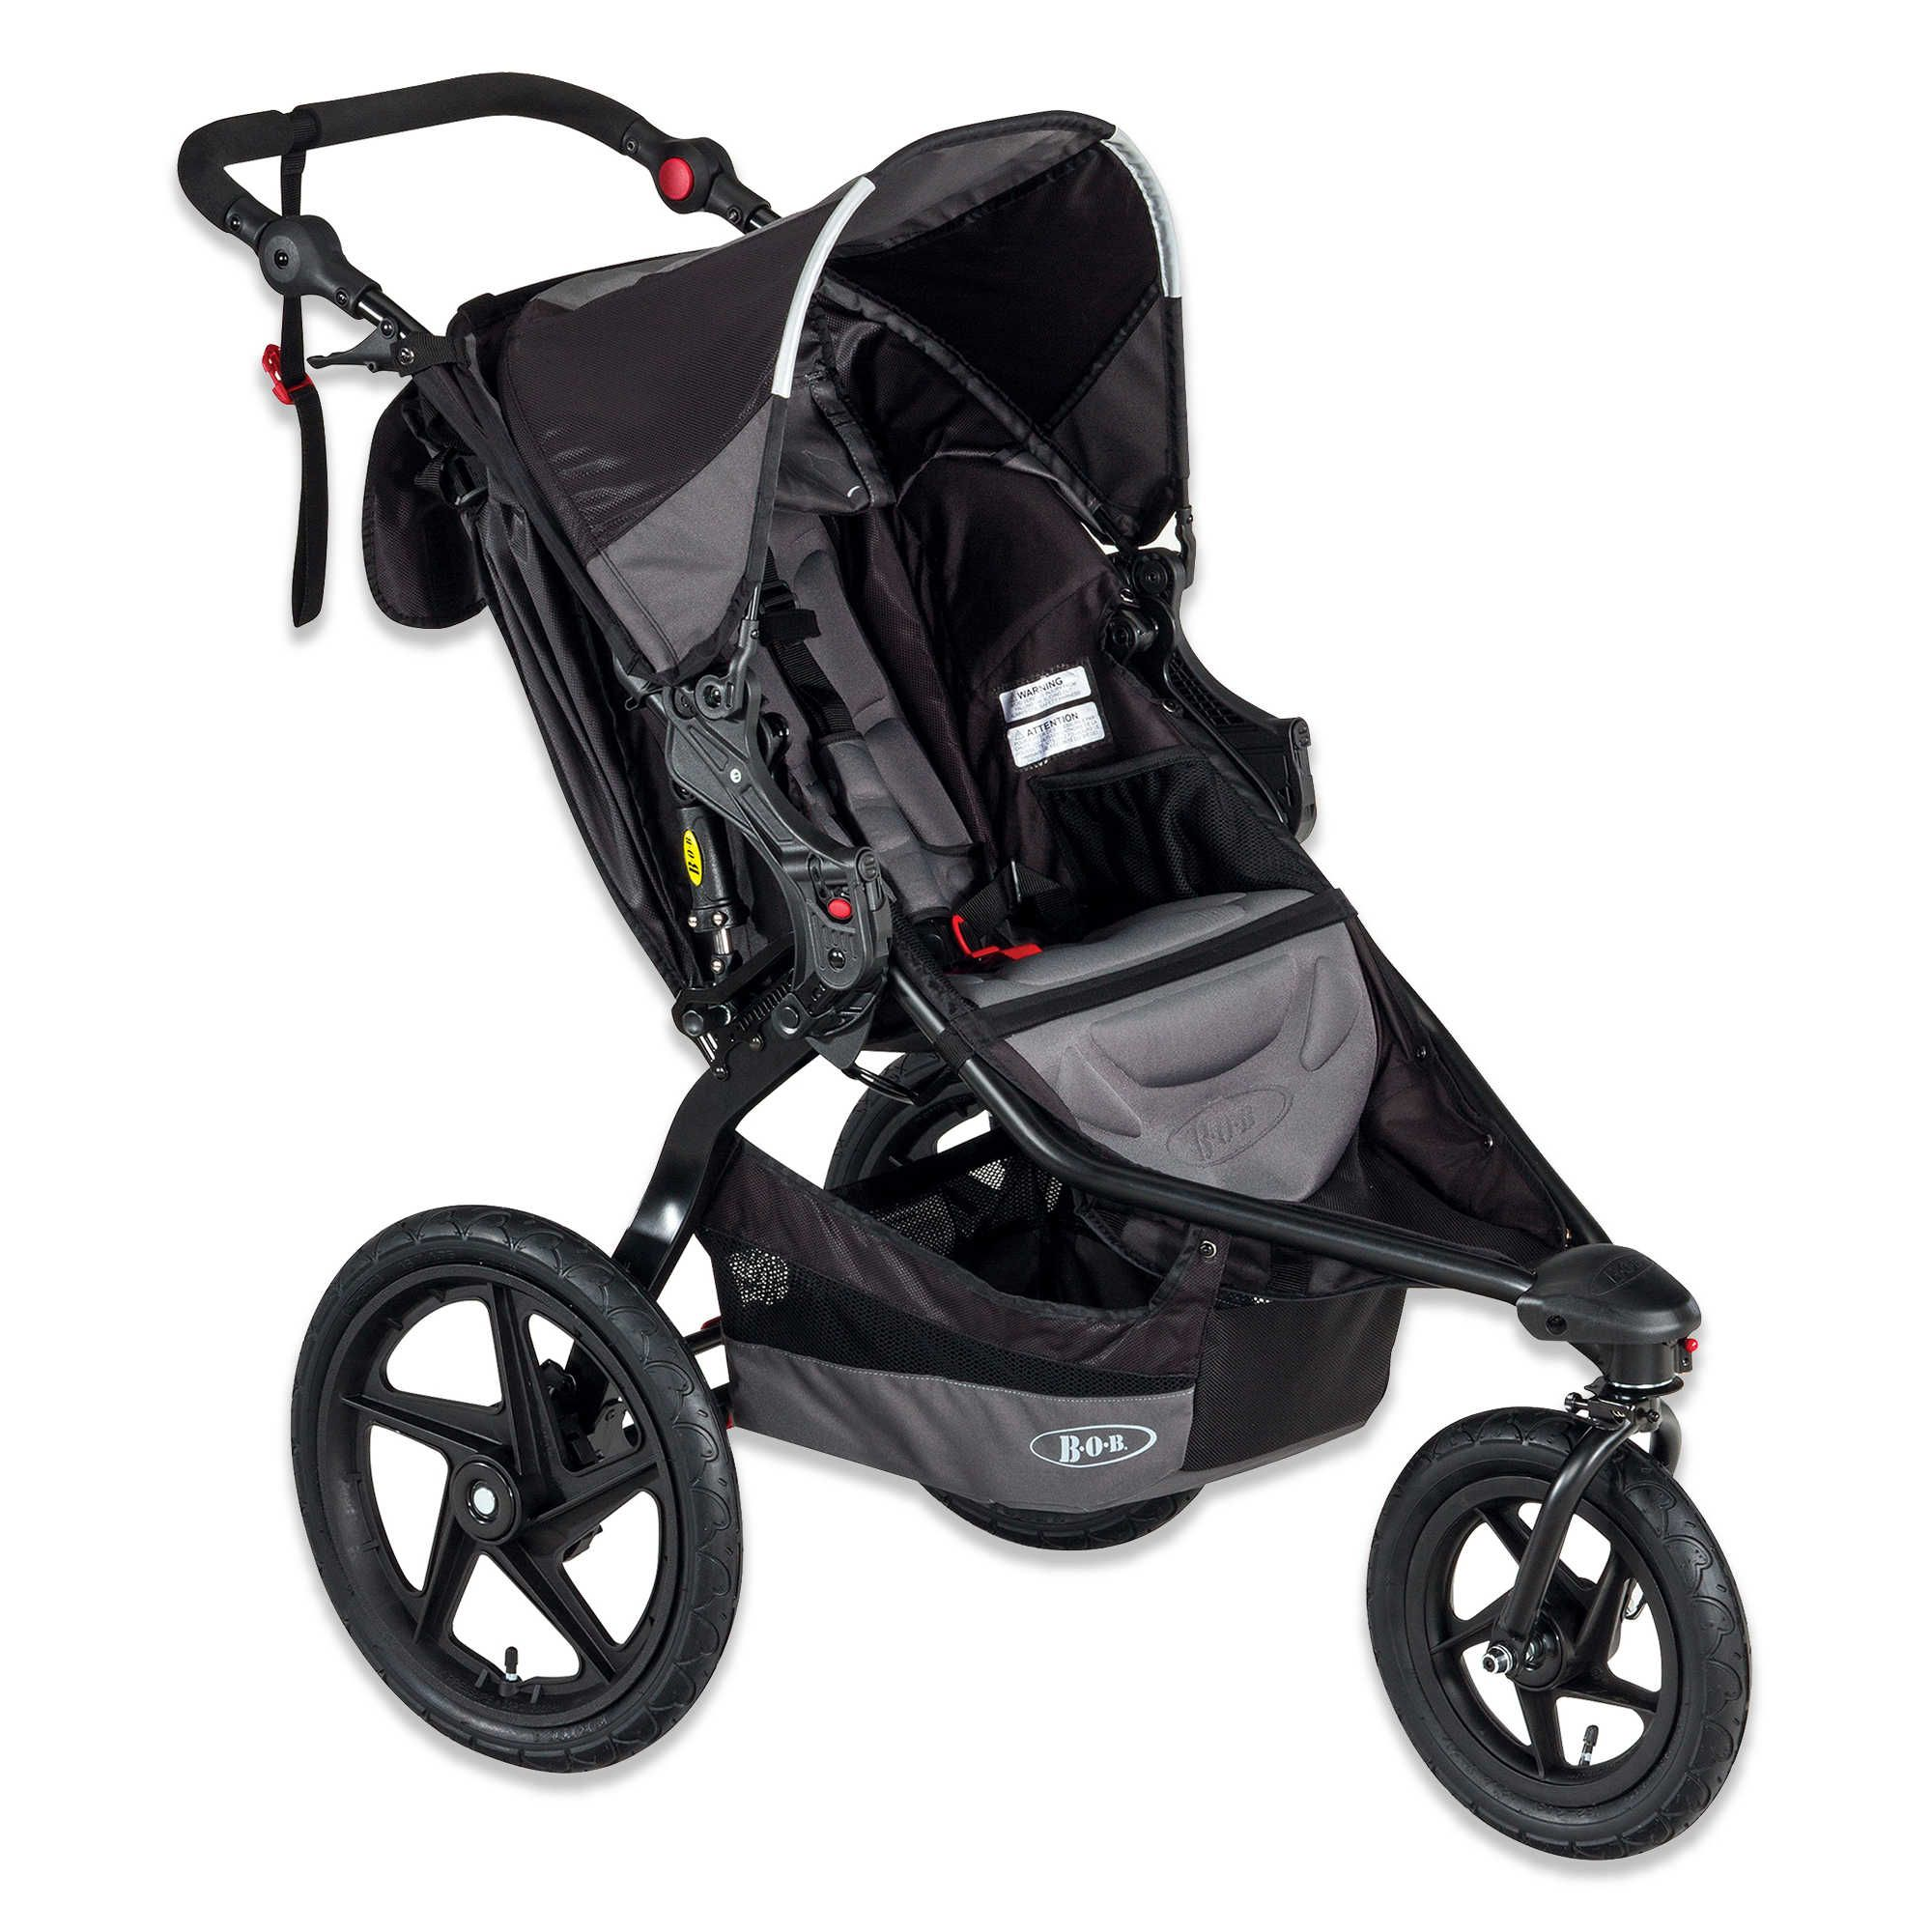 The REVOLUTION FLEX Single Stroller is perfect for even the most intense sport experience while providing